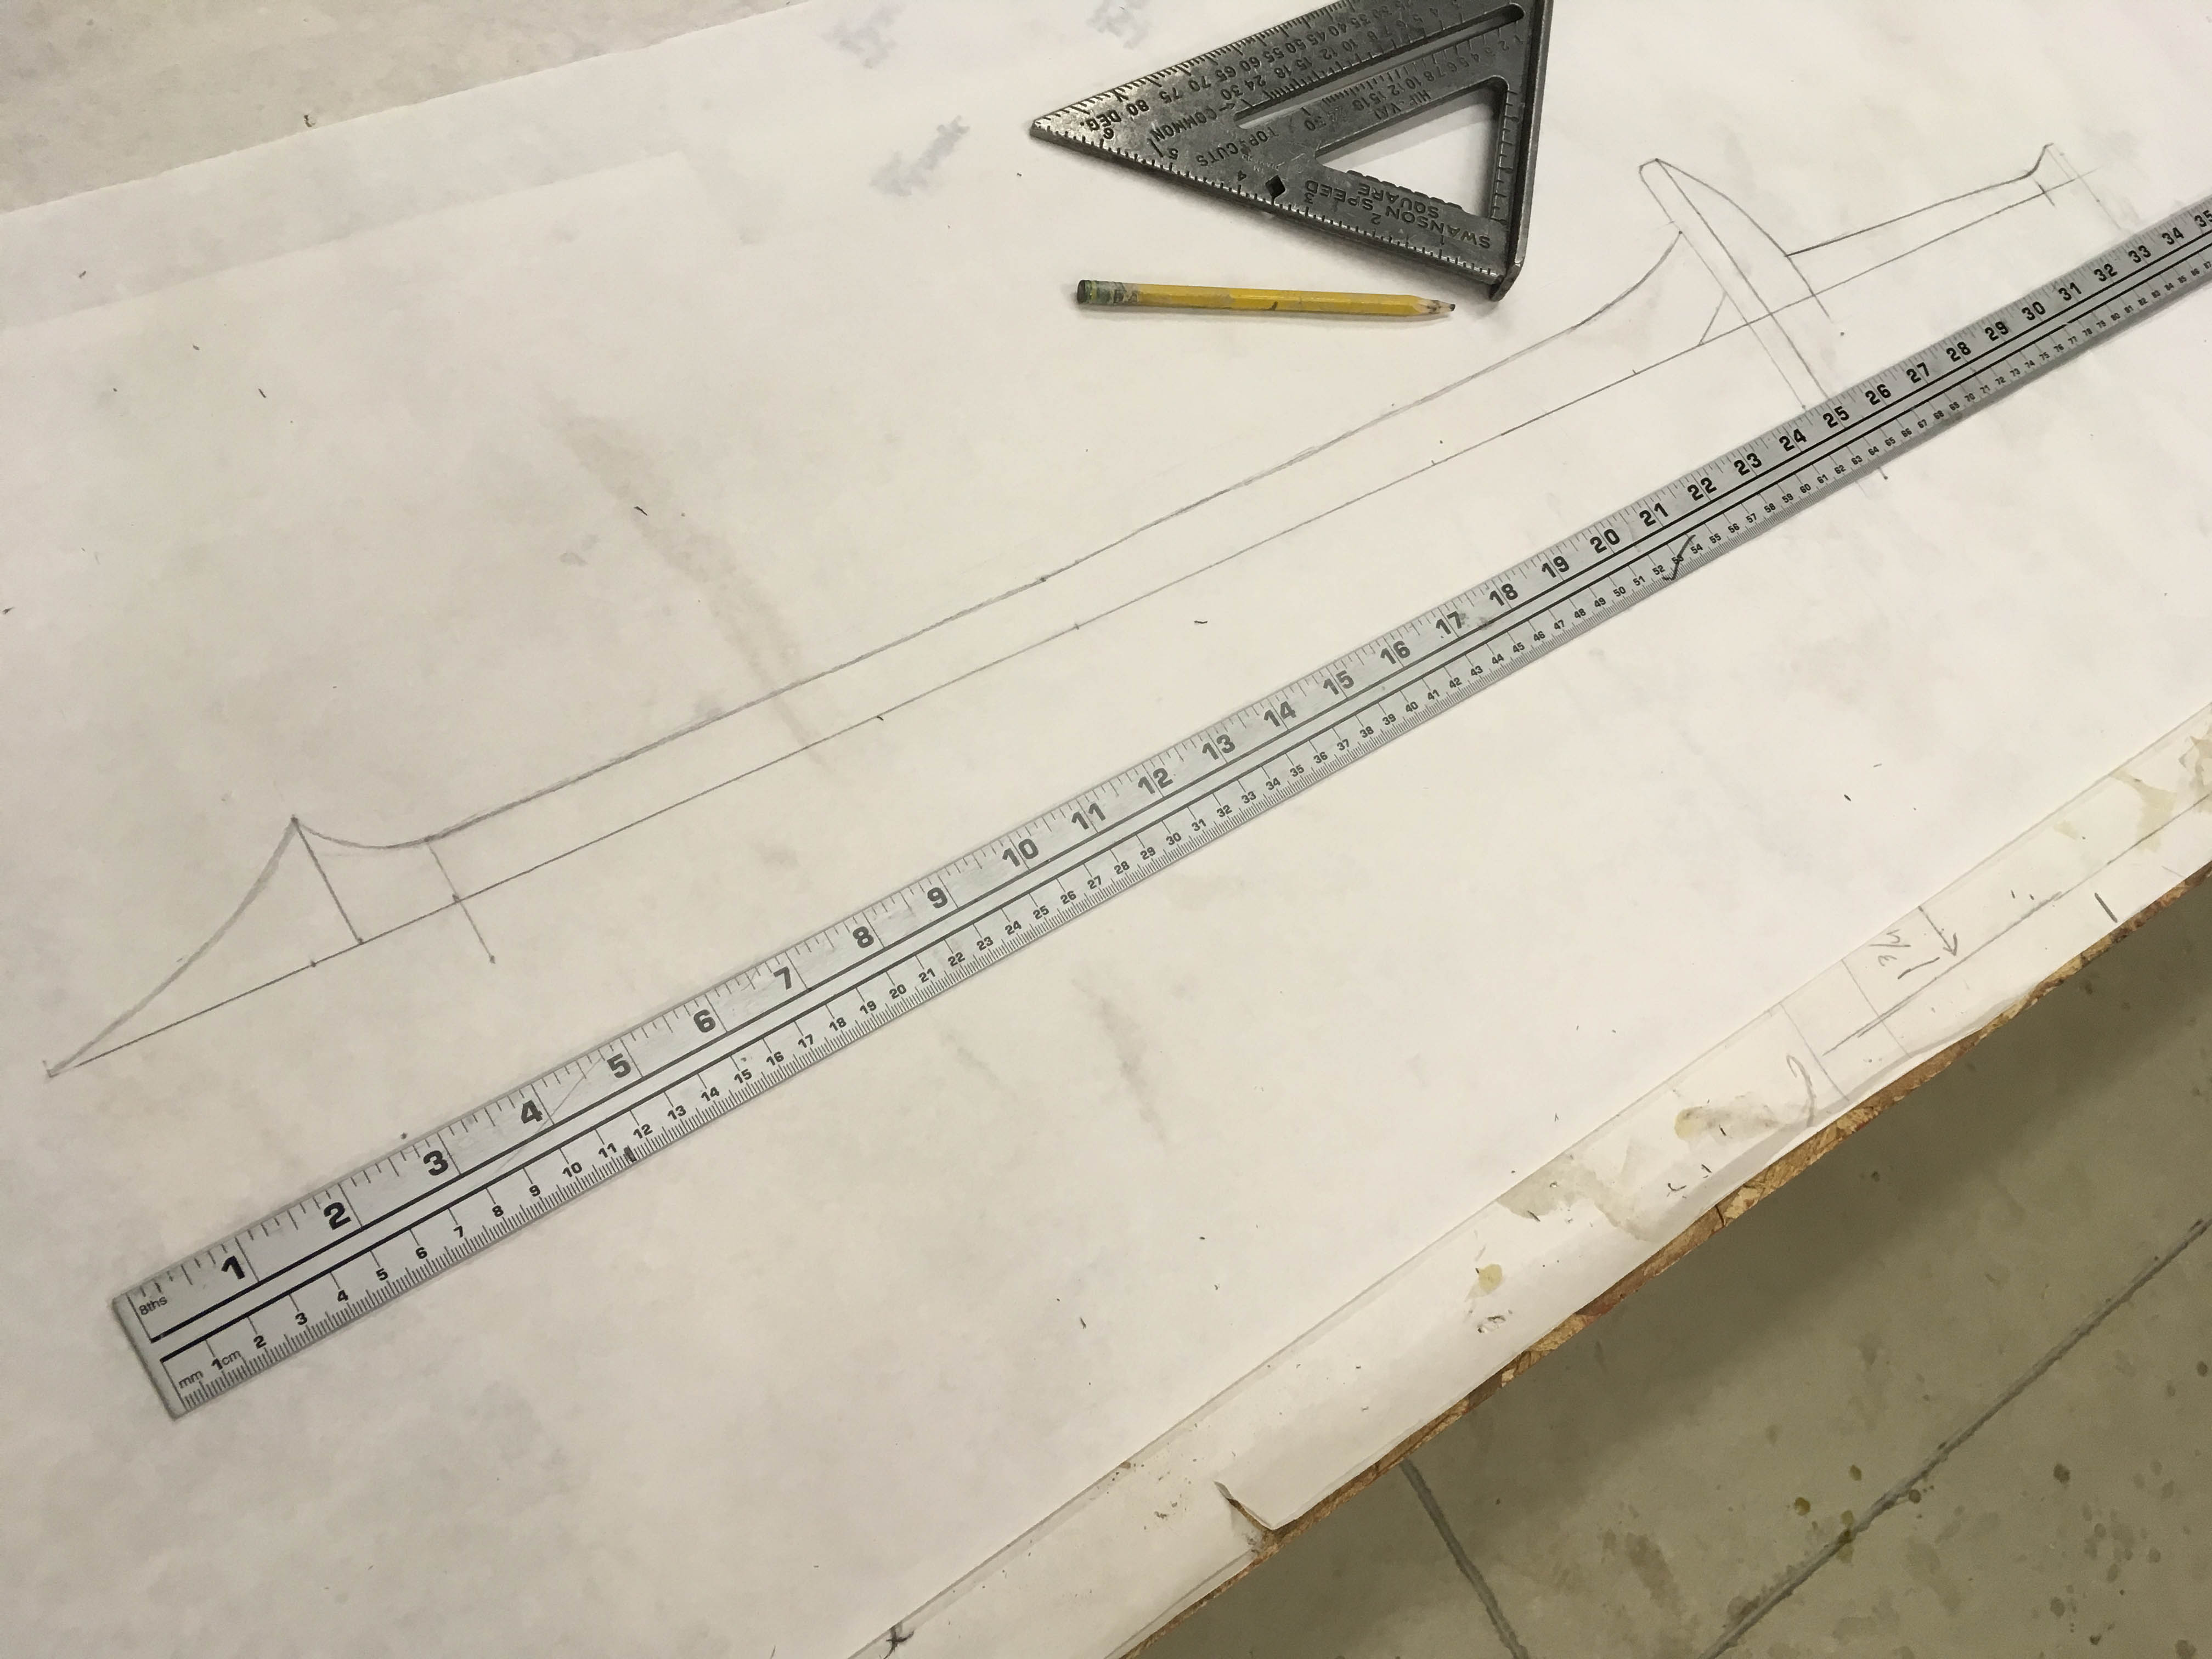 How To Build A Sword With Worbla Thermoplastics Fold An Origami As Long Your Is Symmetrical You Only Need Draw One Side Half Then Paper Over At The Center And Transfer Lines